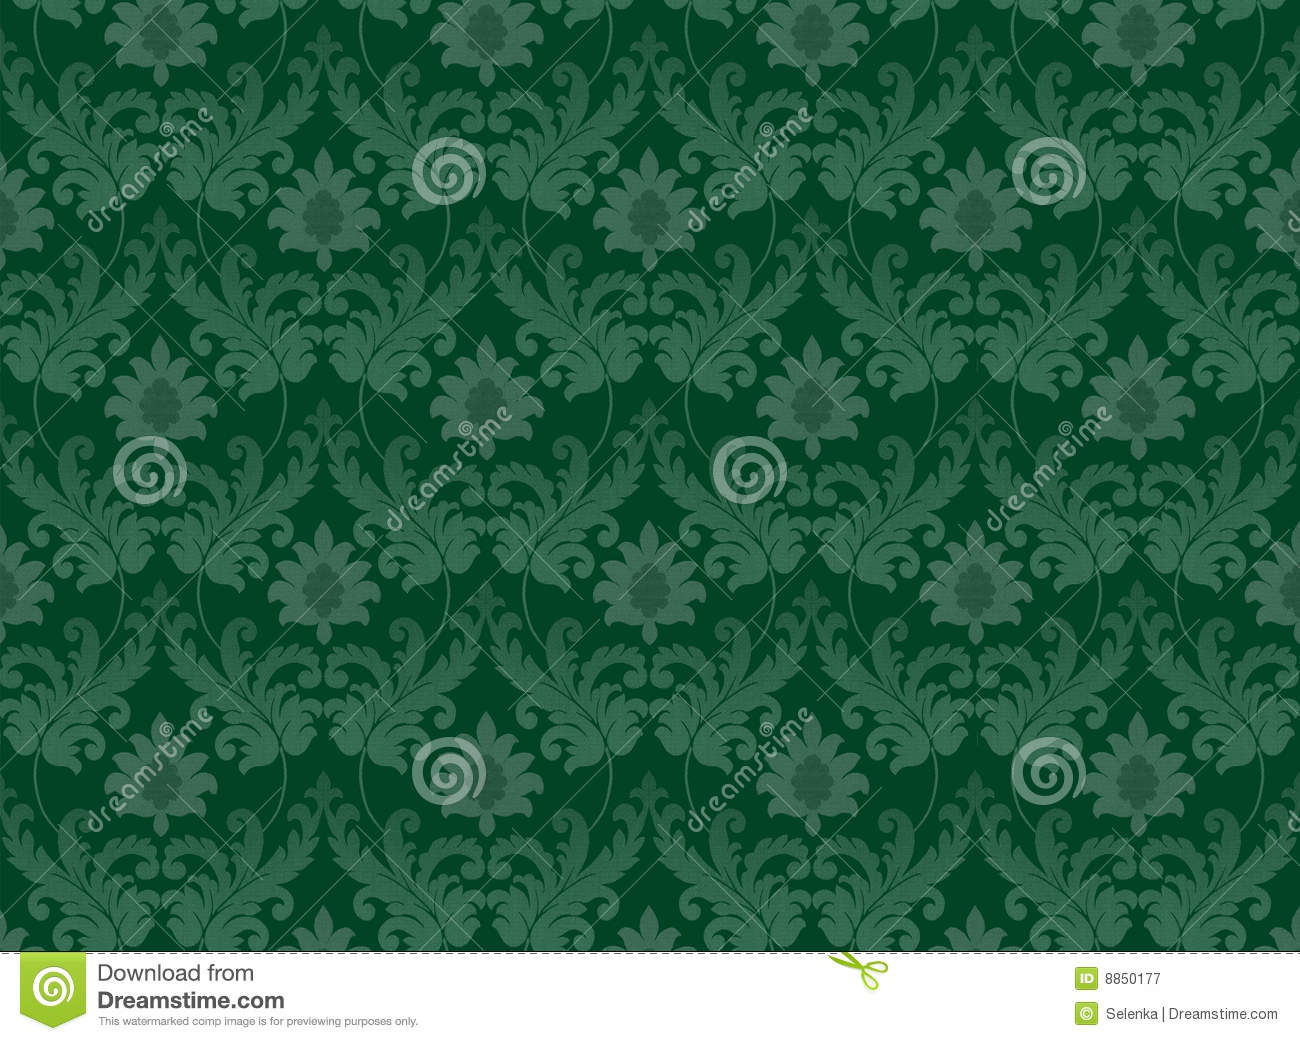 3d Animation Animals Wallpaper Emerald Green Renaissance Background Royalty Free Stock